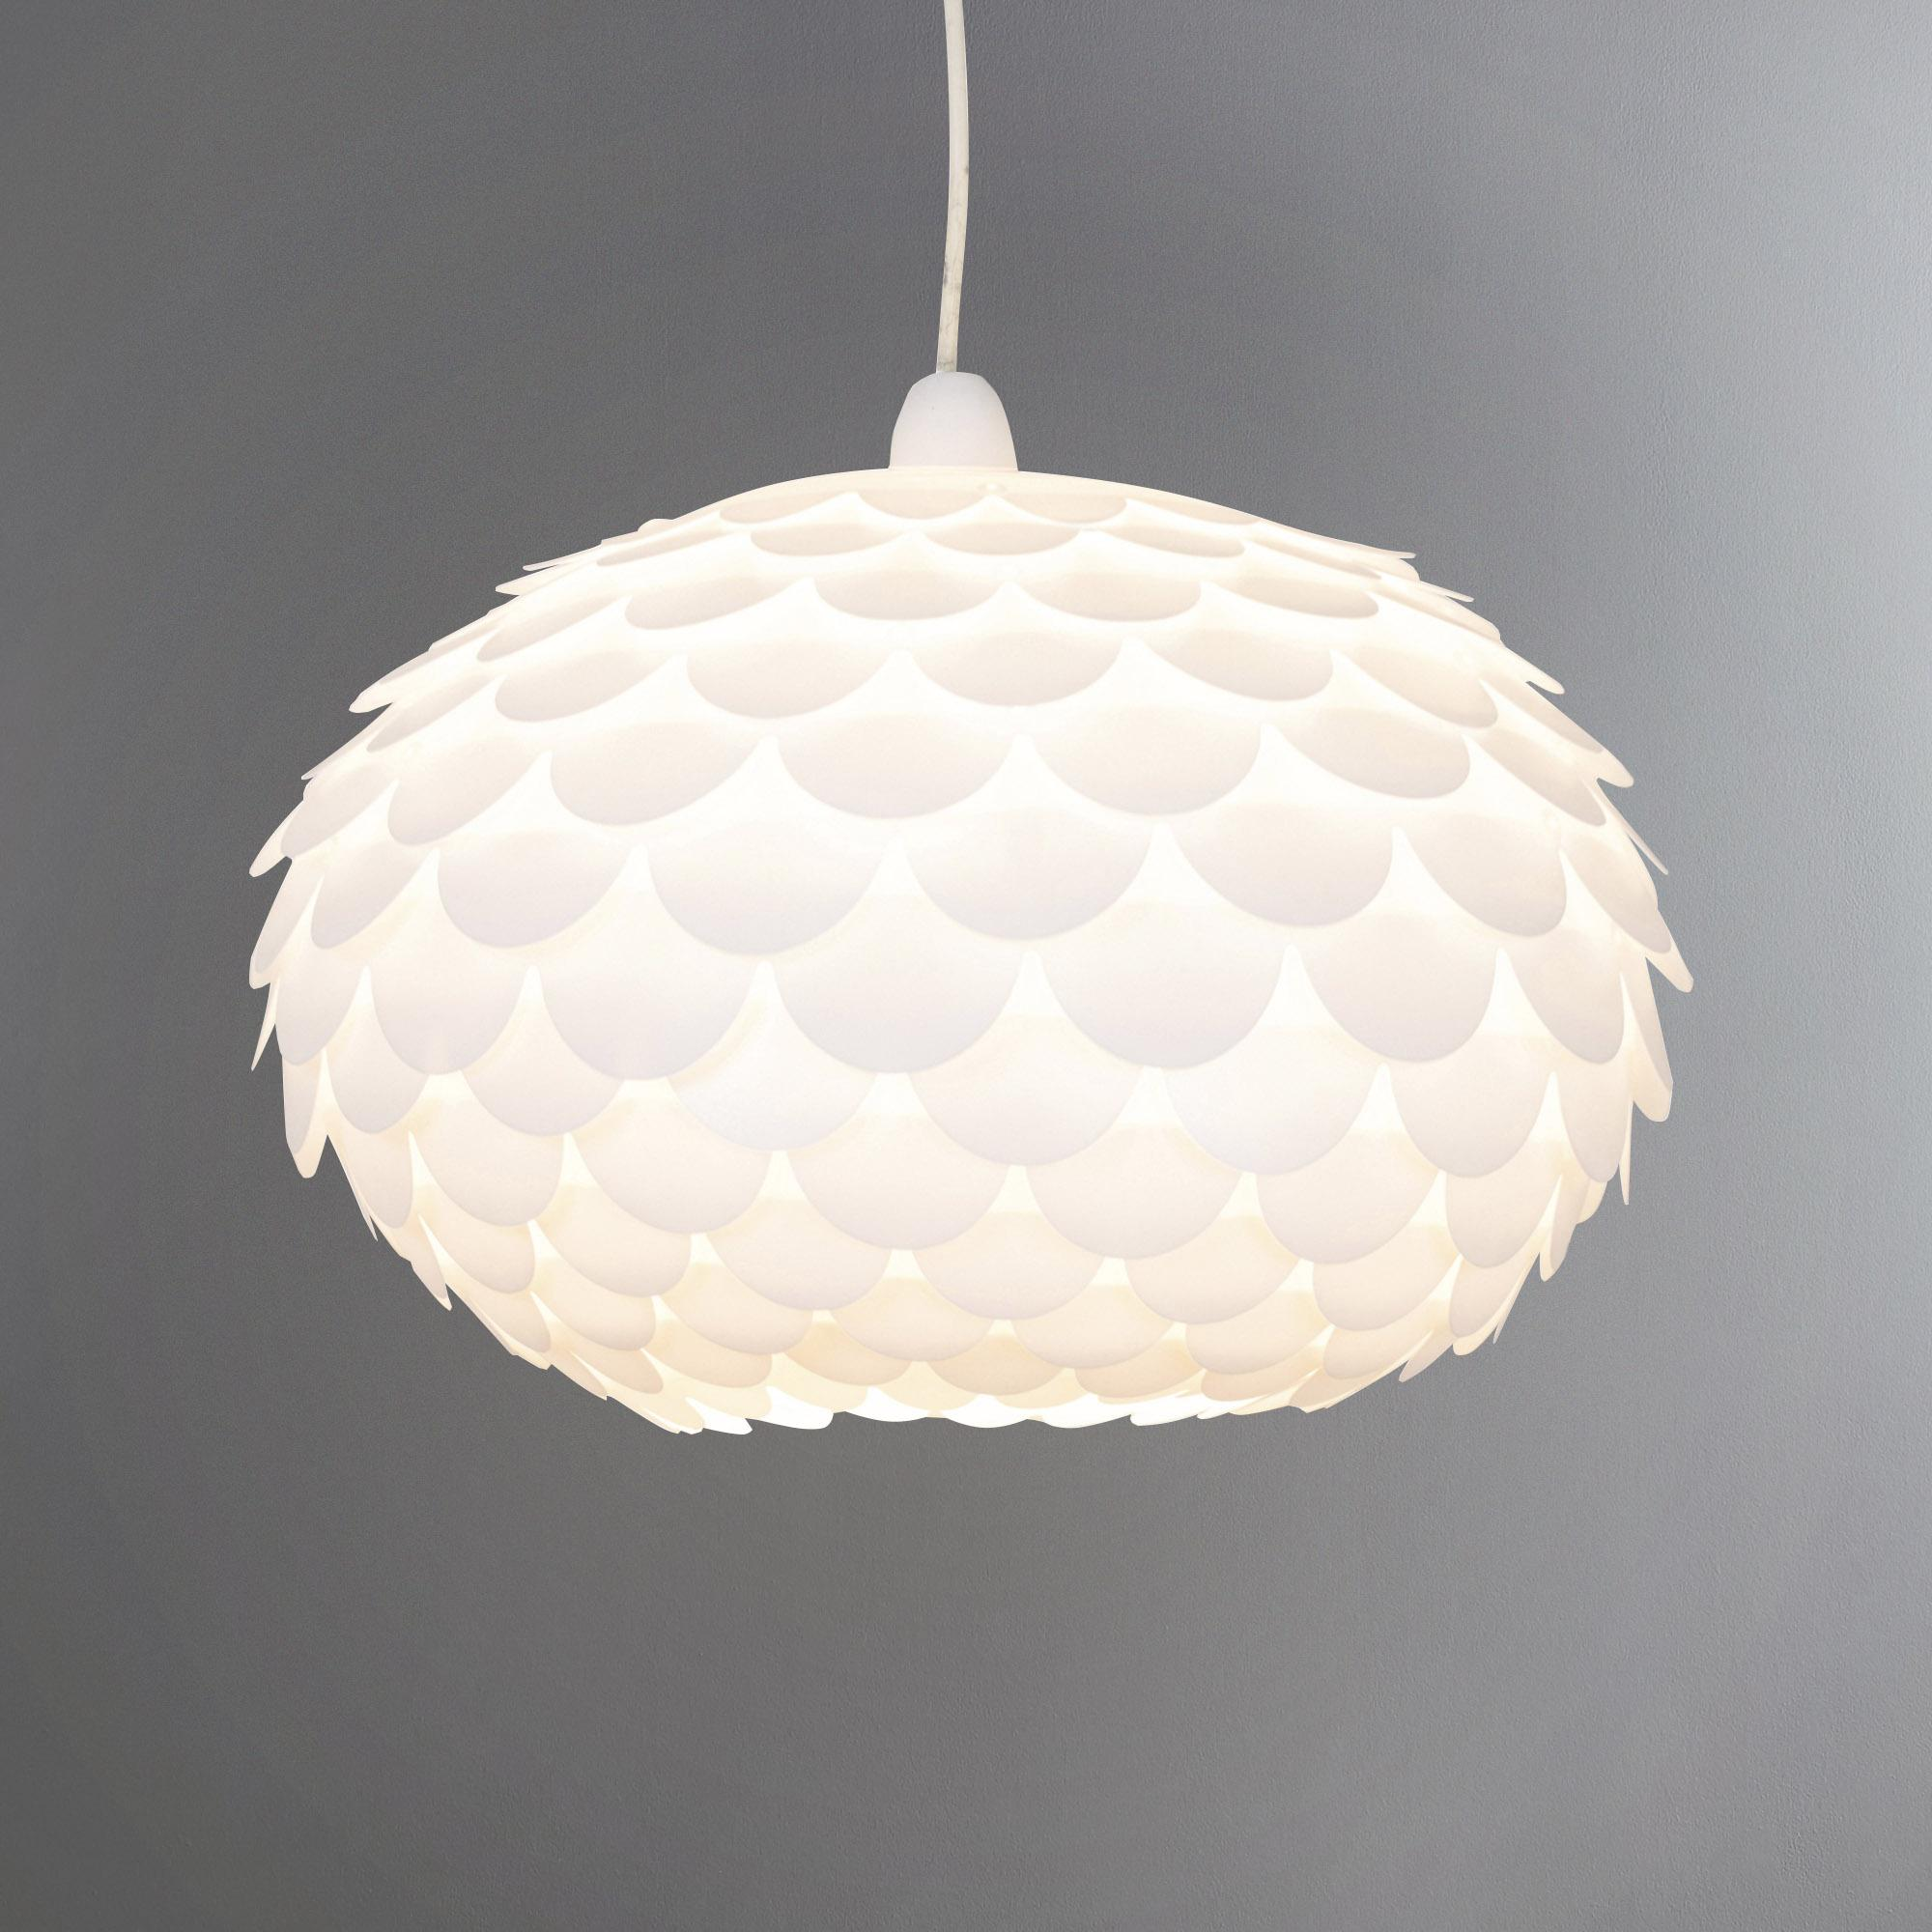 ceiling light shades priya white easy fit pendant shade TQHJDFD